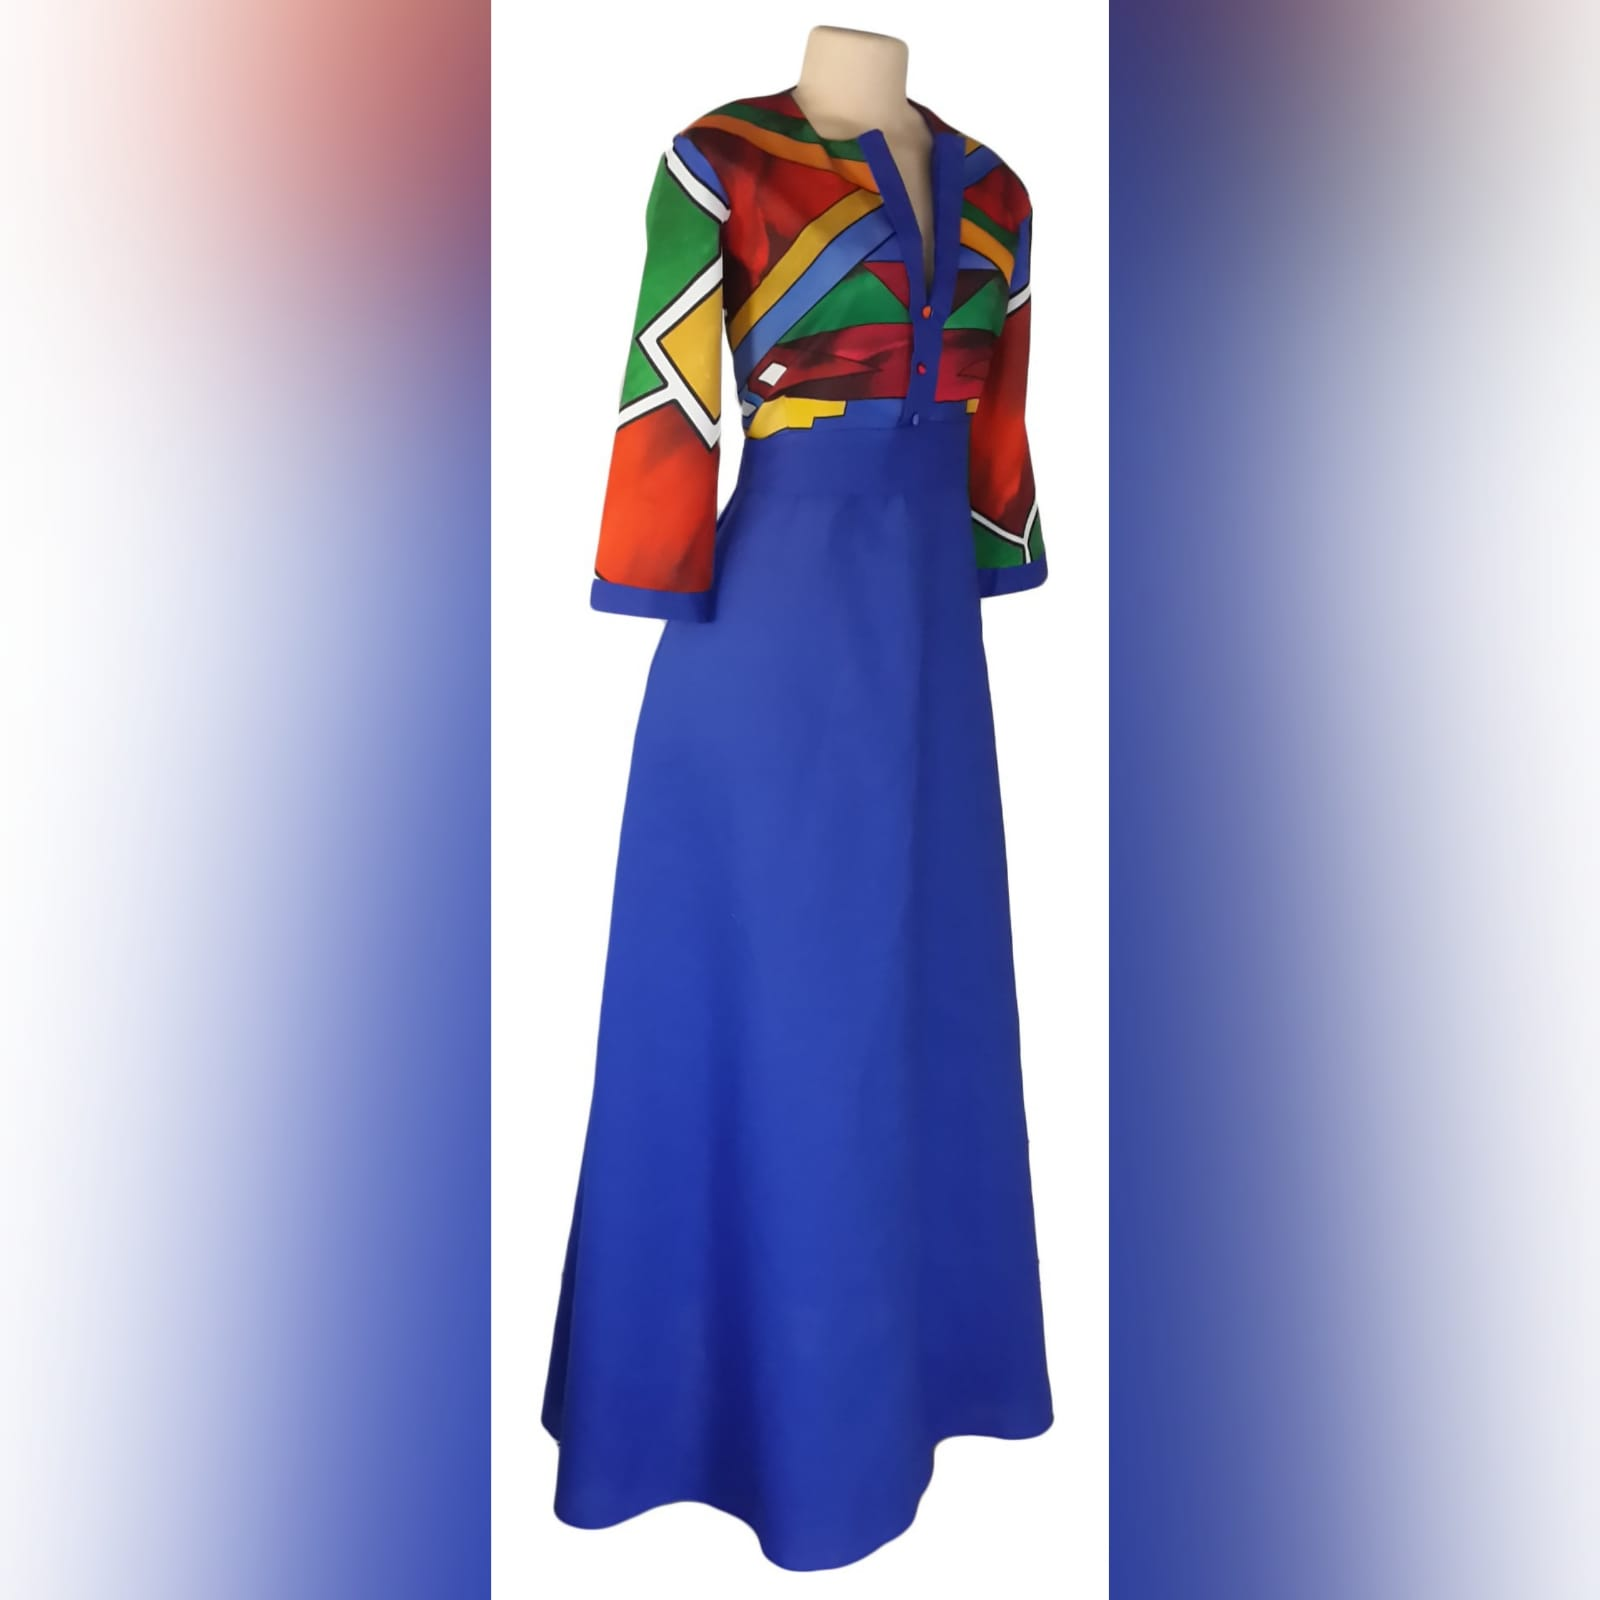 Royal blue ndebele dress and matching ndebele shirt 7 royal blue and ndebele empire fit dress. Bodice with ndebele print and 3/4 sleeves and an under bust belt. Mens matching ndebele shirt in royal blue. Traditional wedding attire.